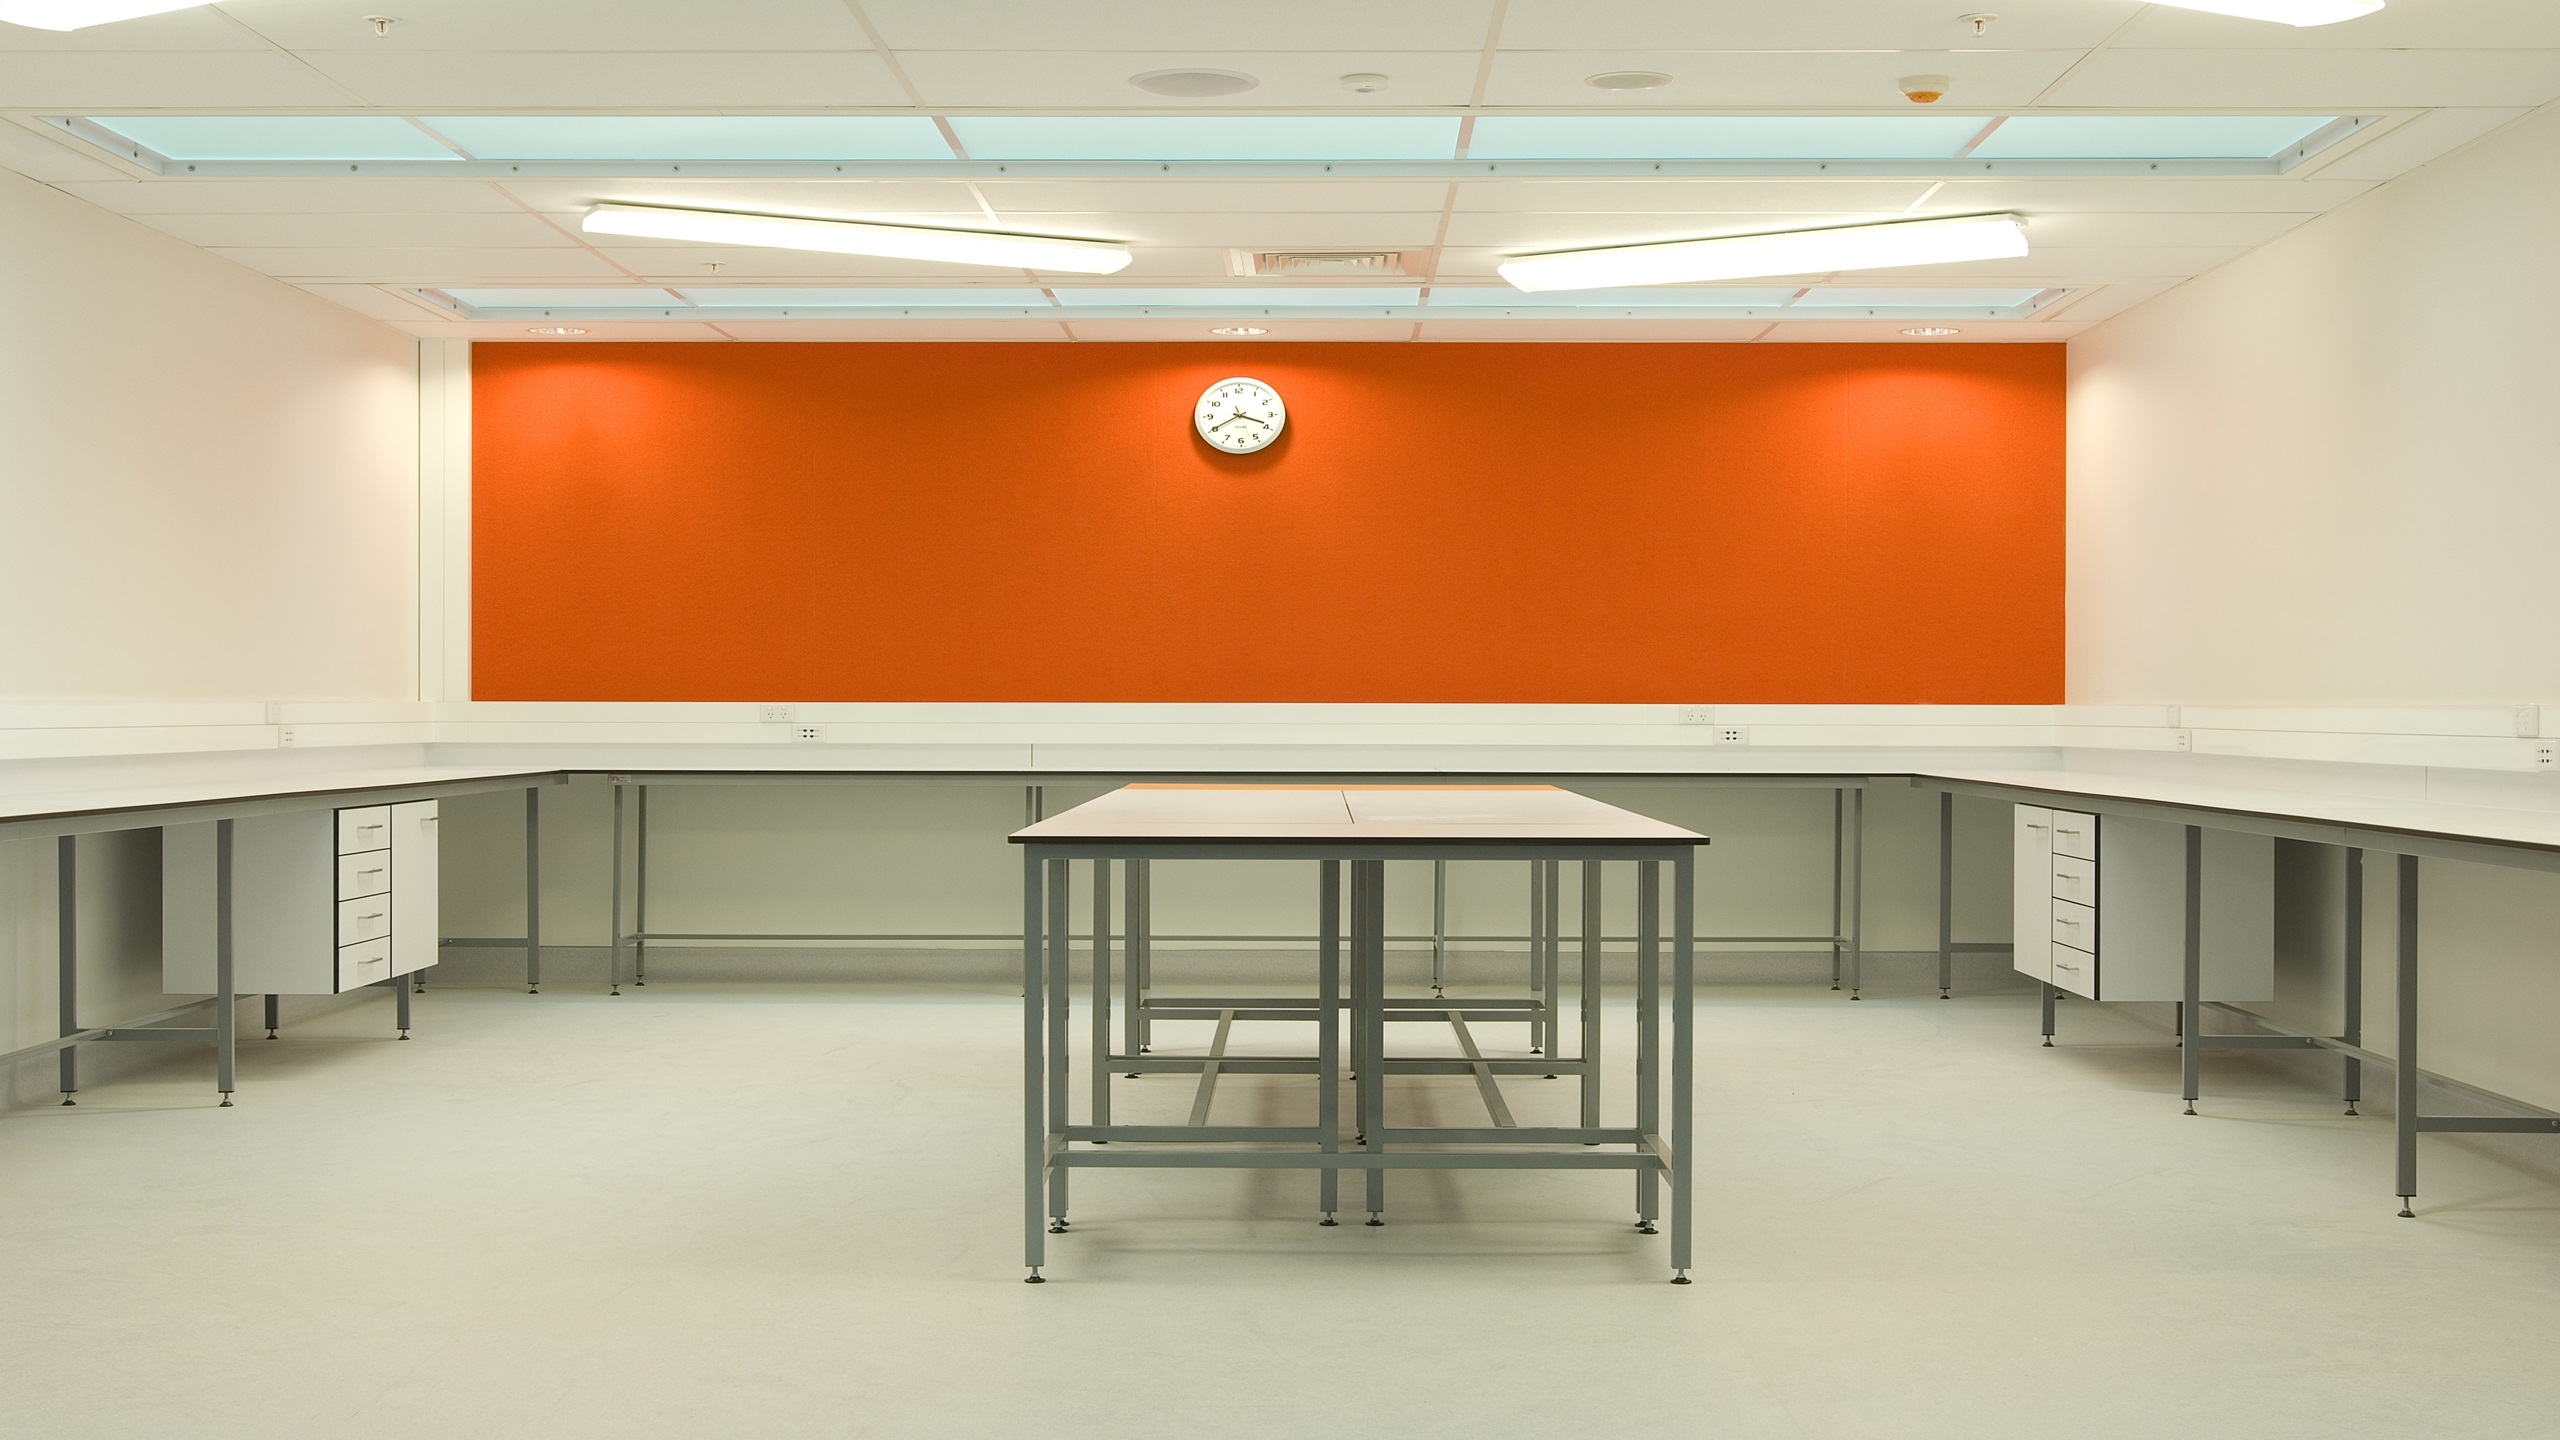 Hobsonville Point Intermediate science room showing Premier Pinboard in orange installed on the wall